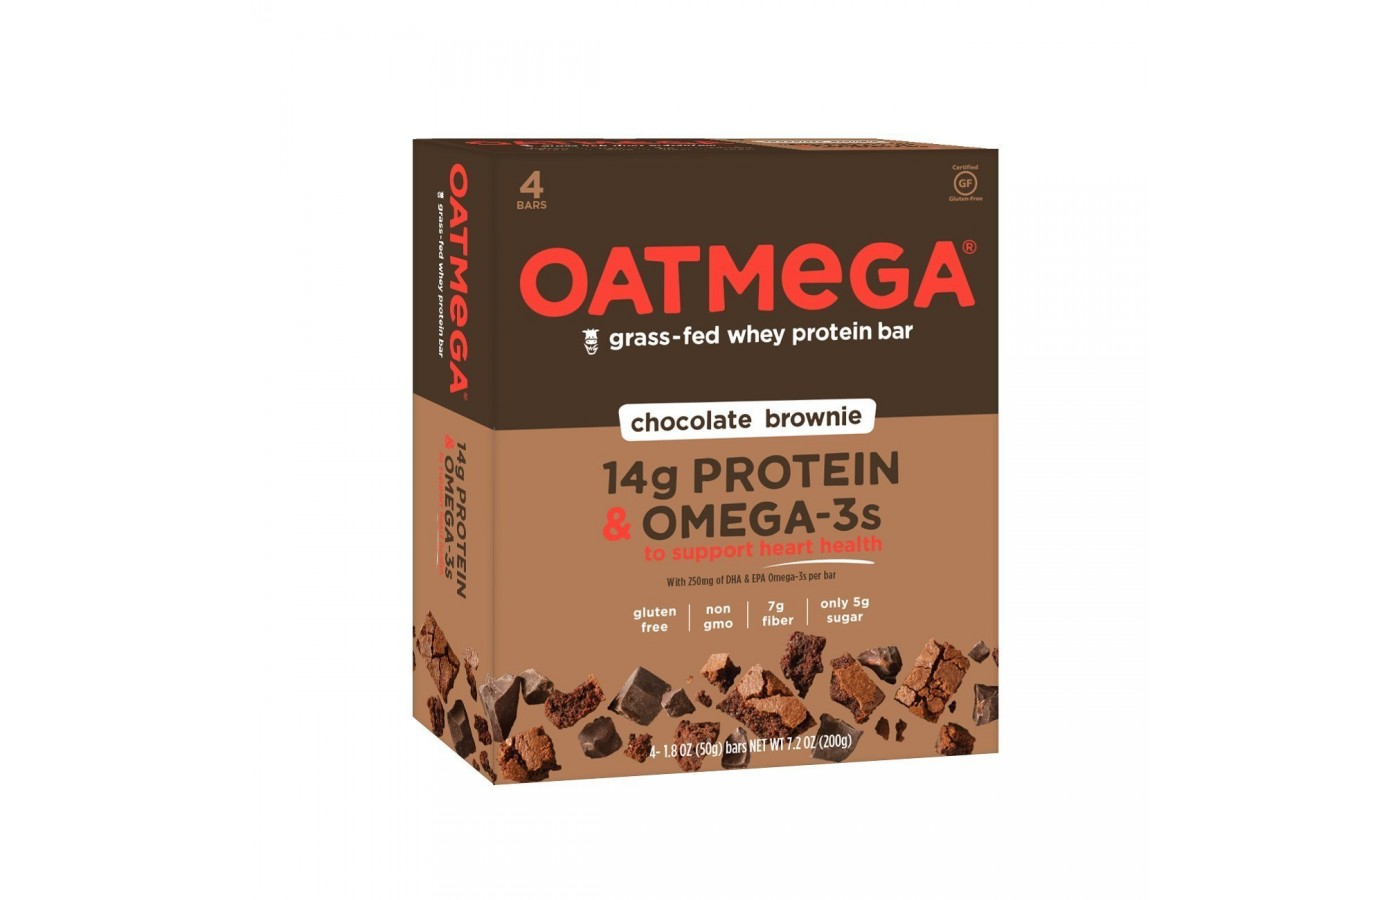 Oatmega Bar choc brownie